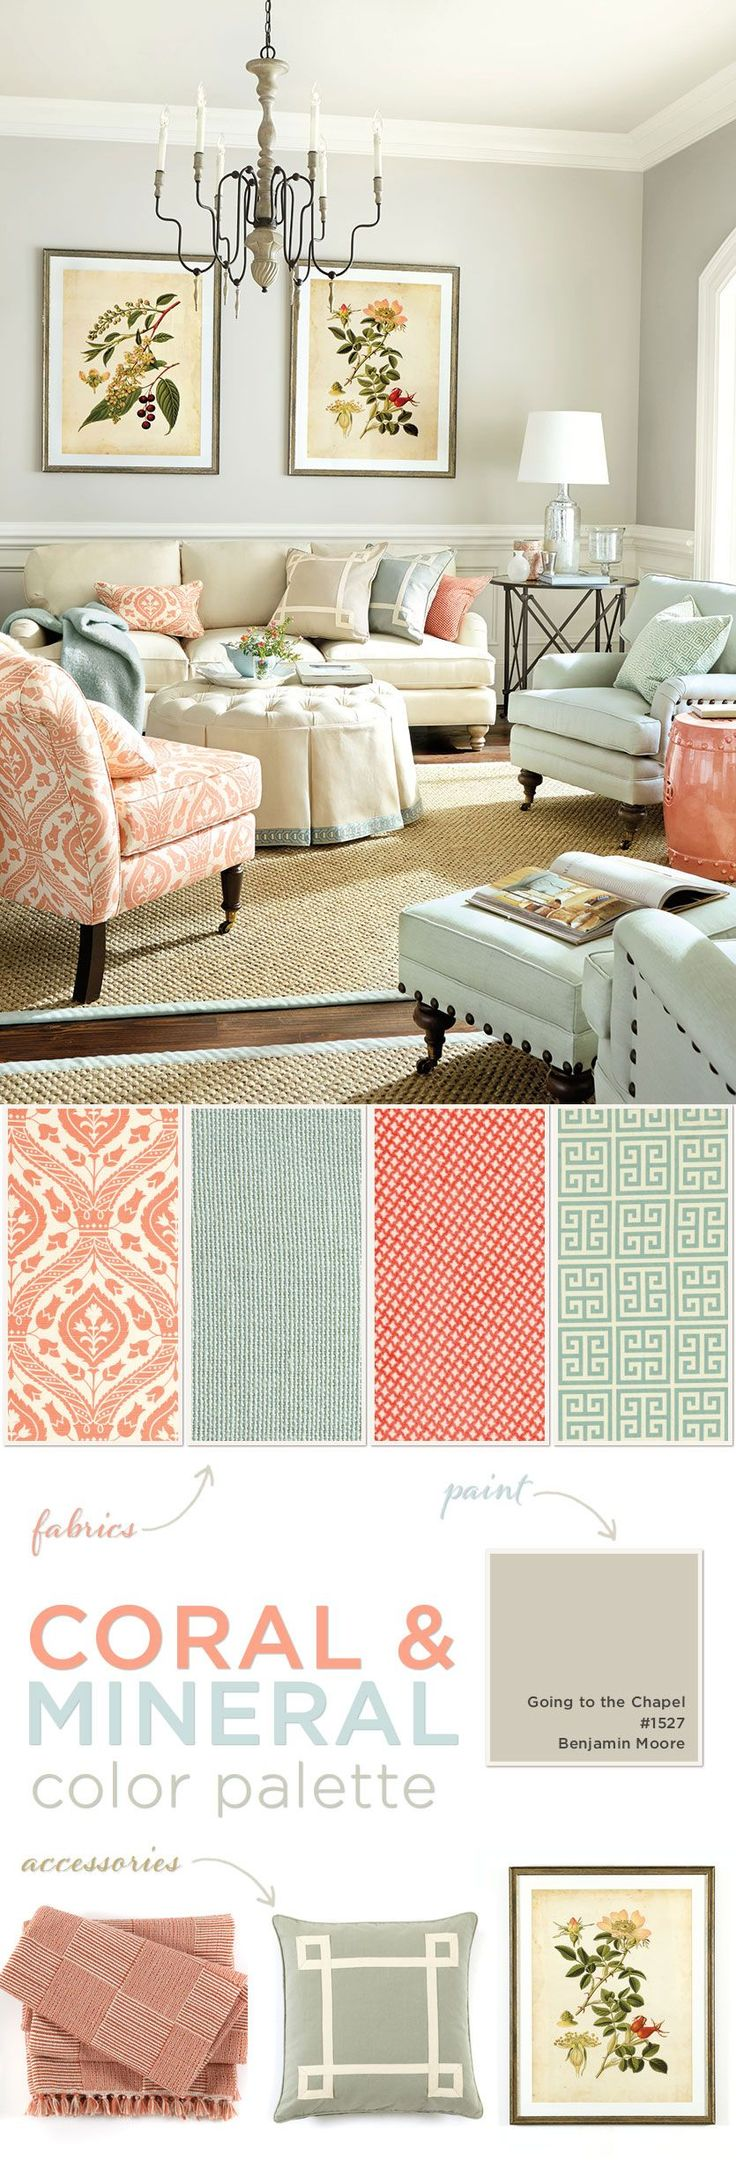 color palette of coral and mineral... might be a nice addition to your coral comforter?